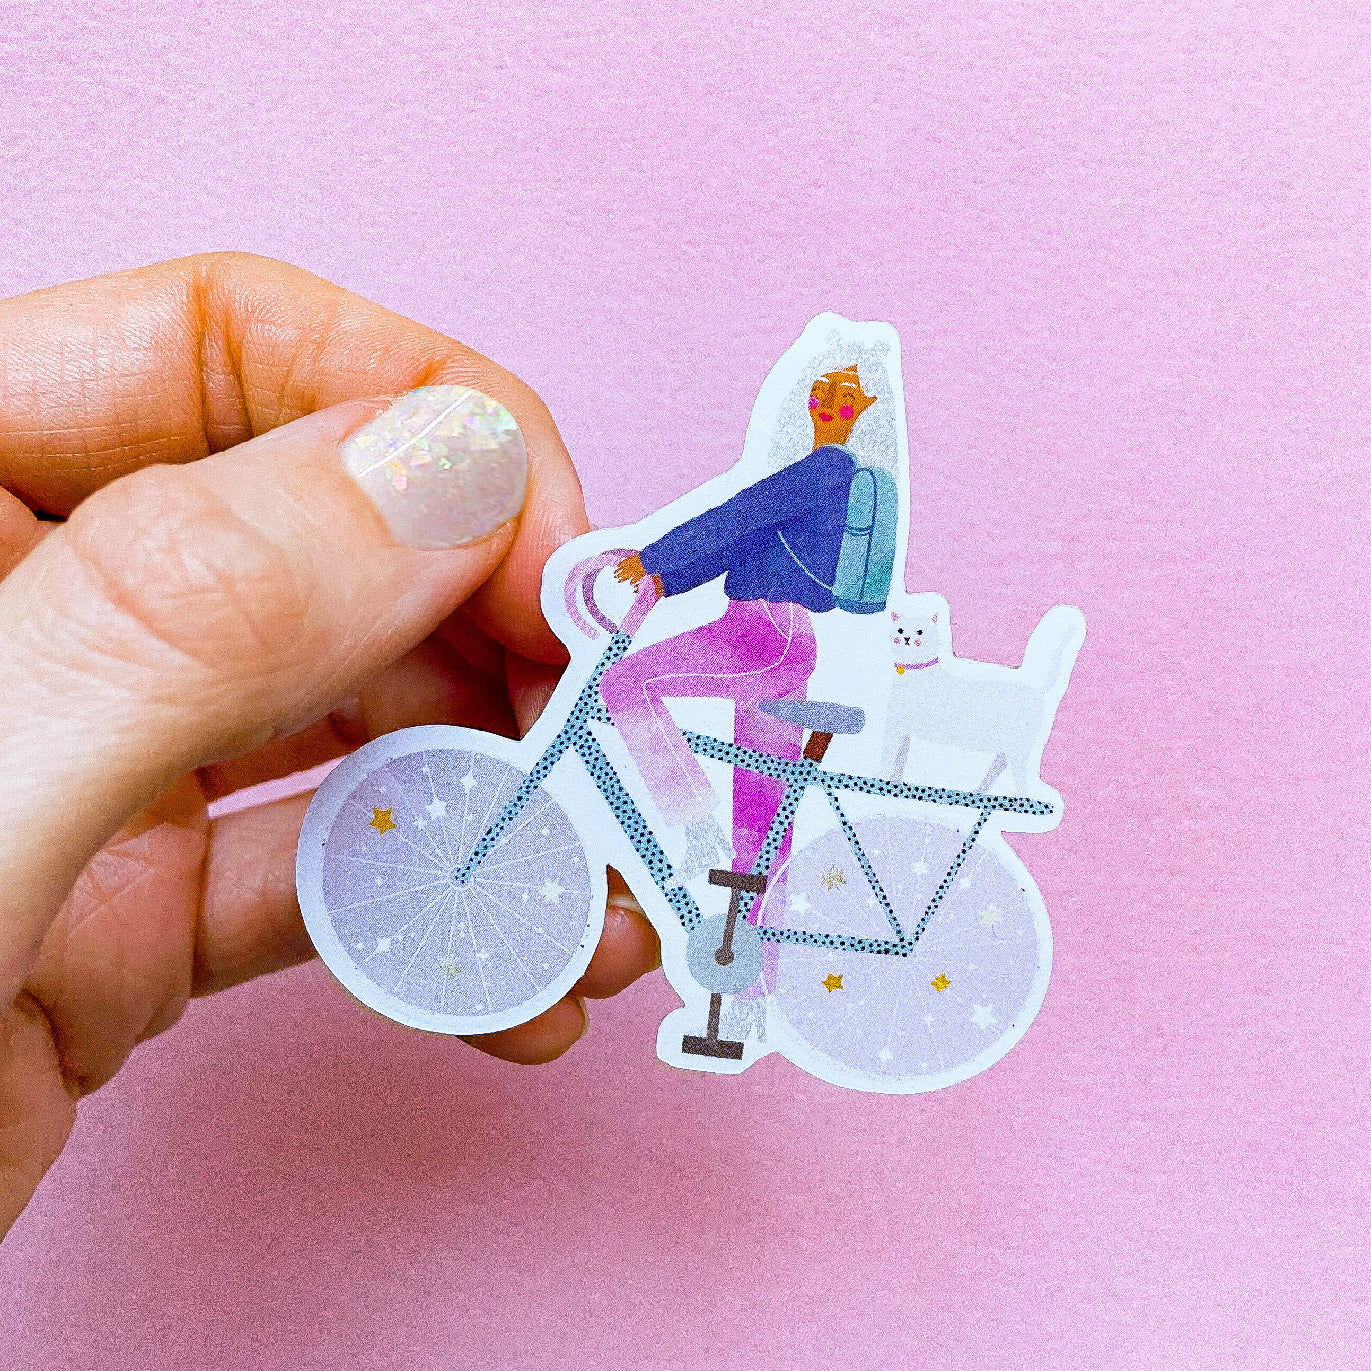 Semi transparent sticker - Cosmic bike